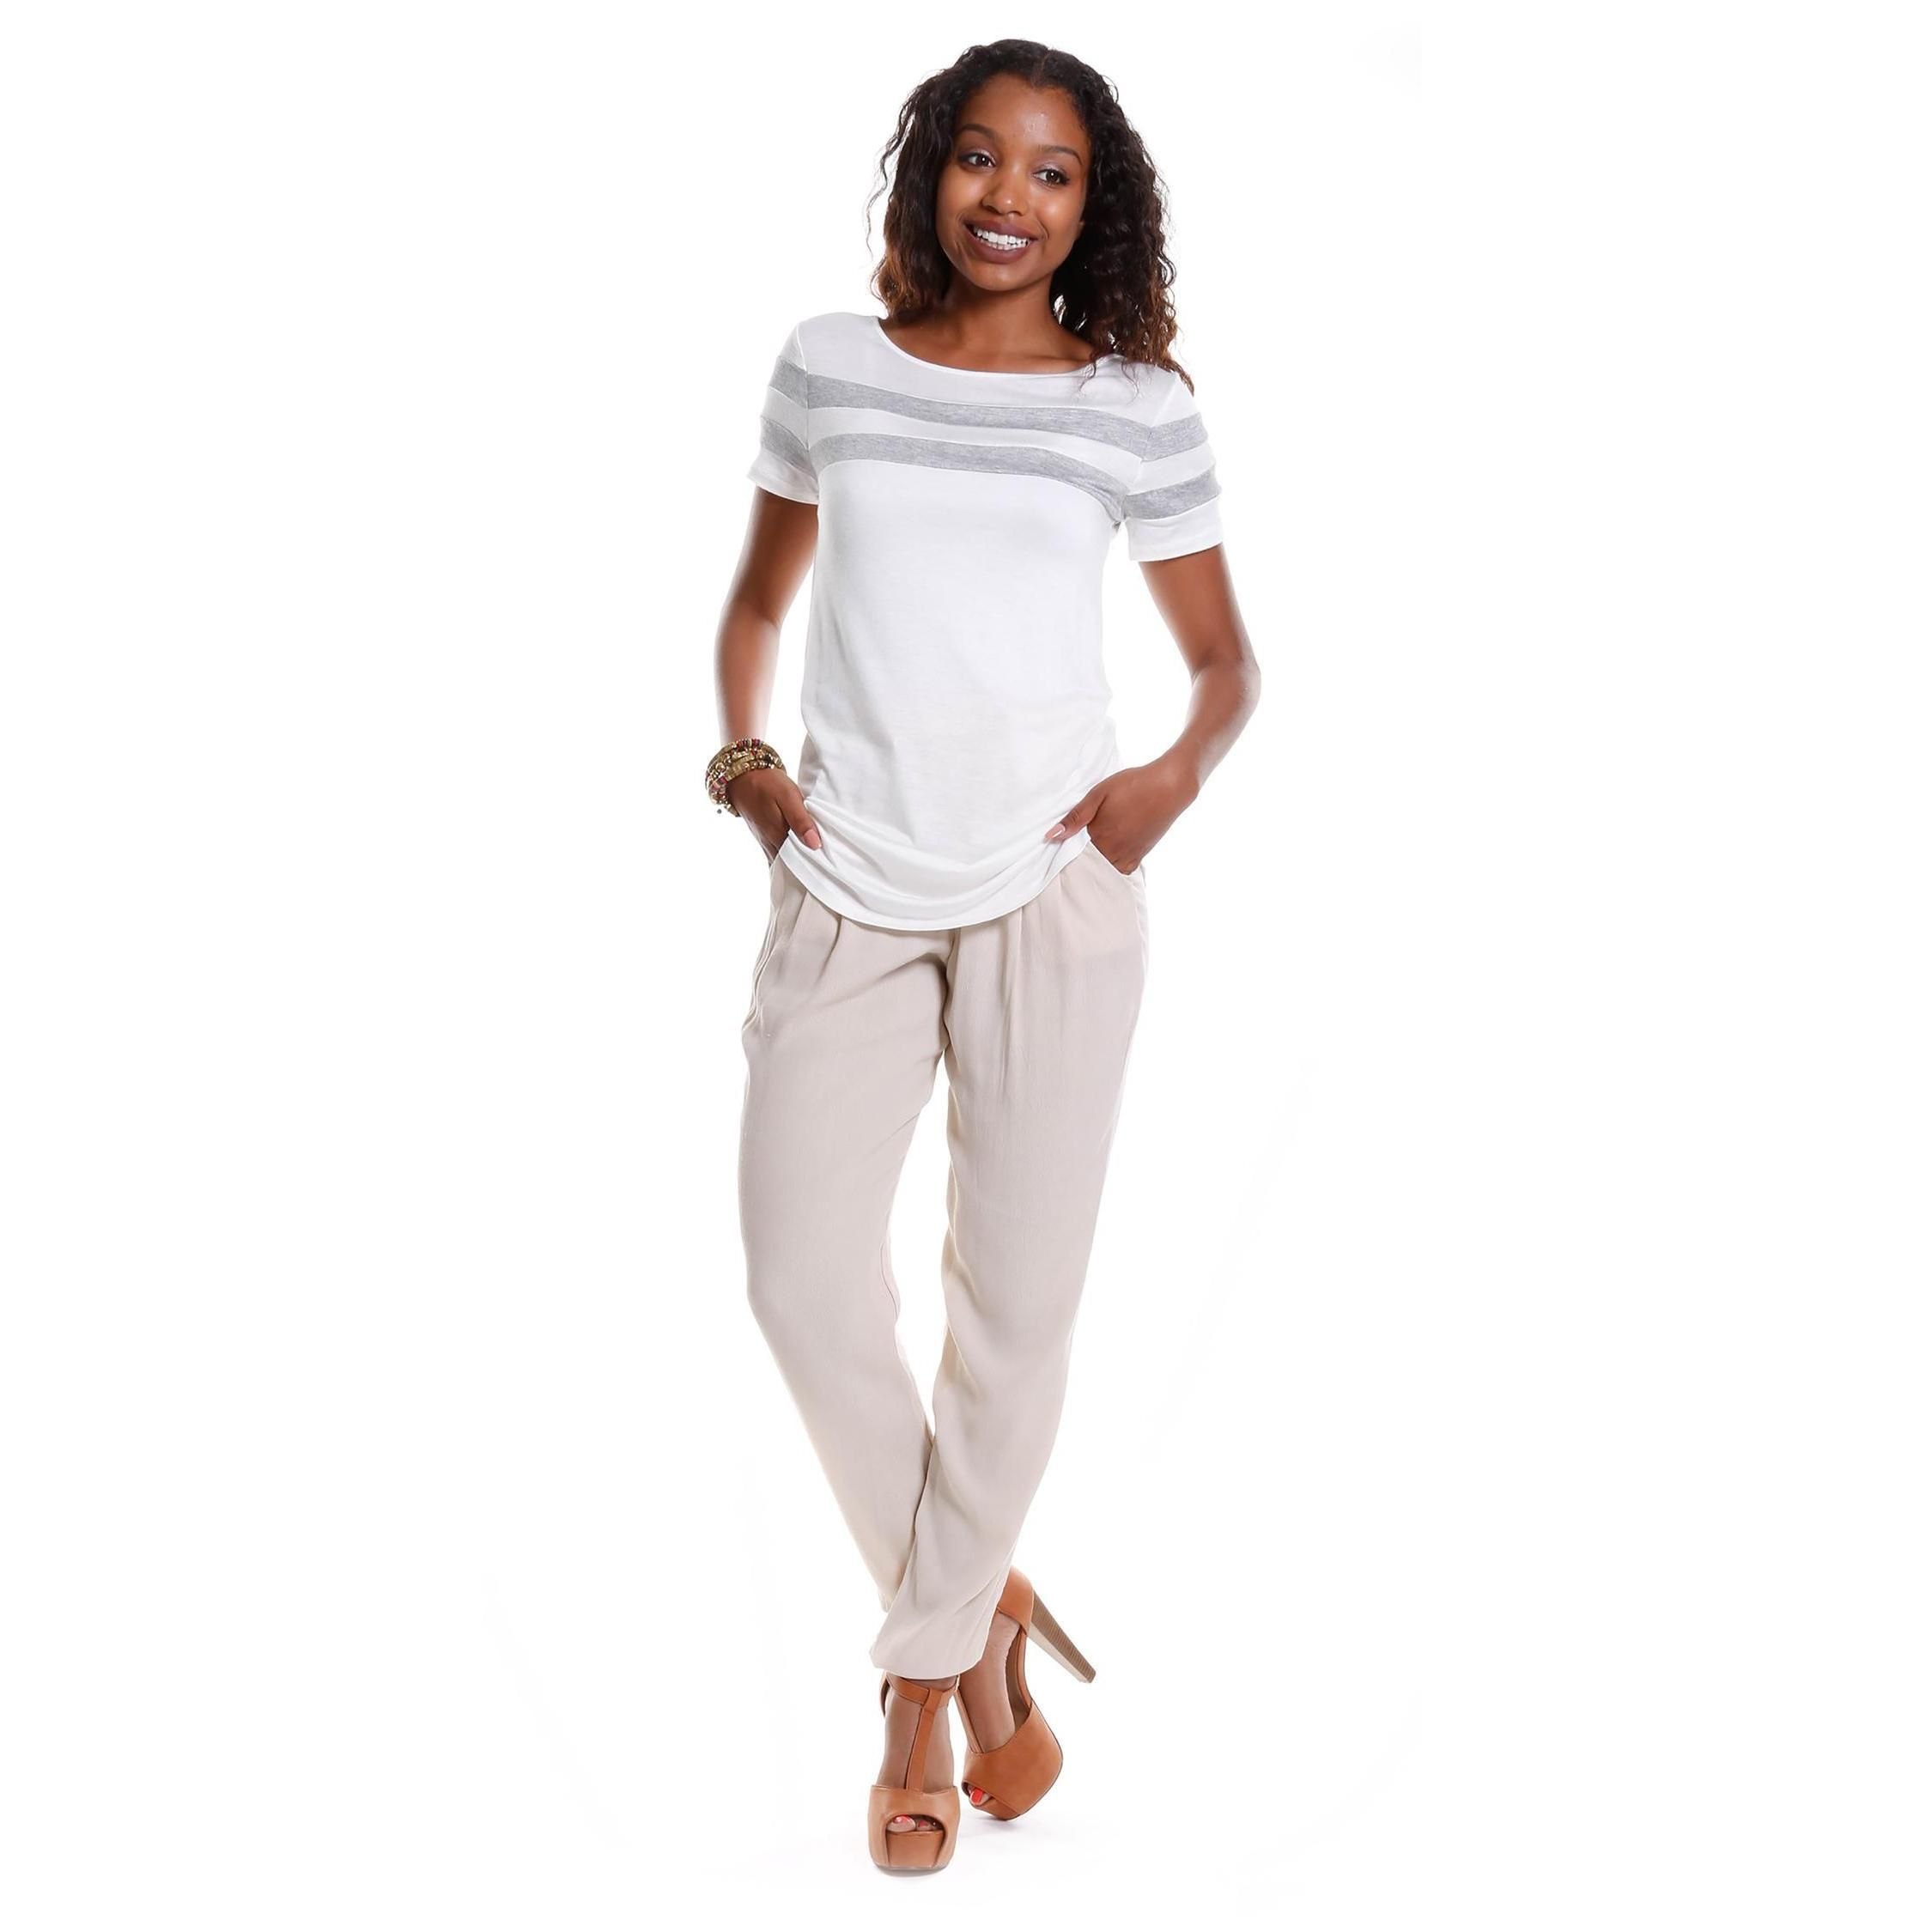 Communication on this topic: Chic Pants Are A Must-Have This Season, chic-pants-are-a-must-have-this-season/